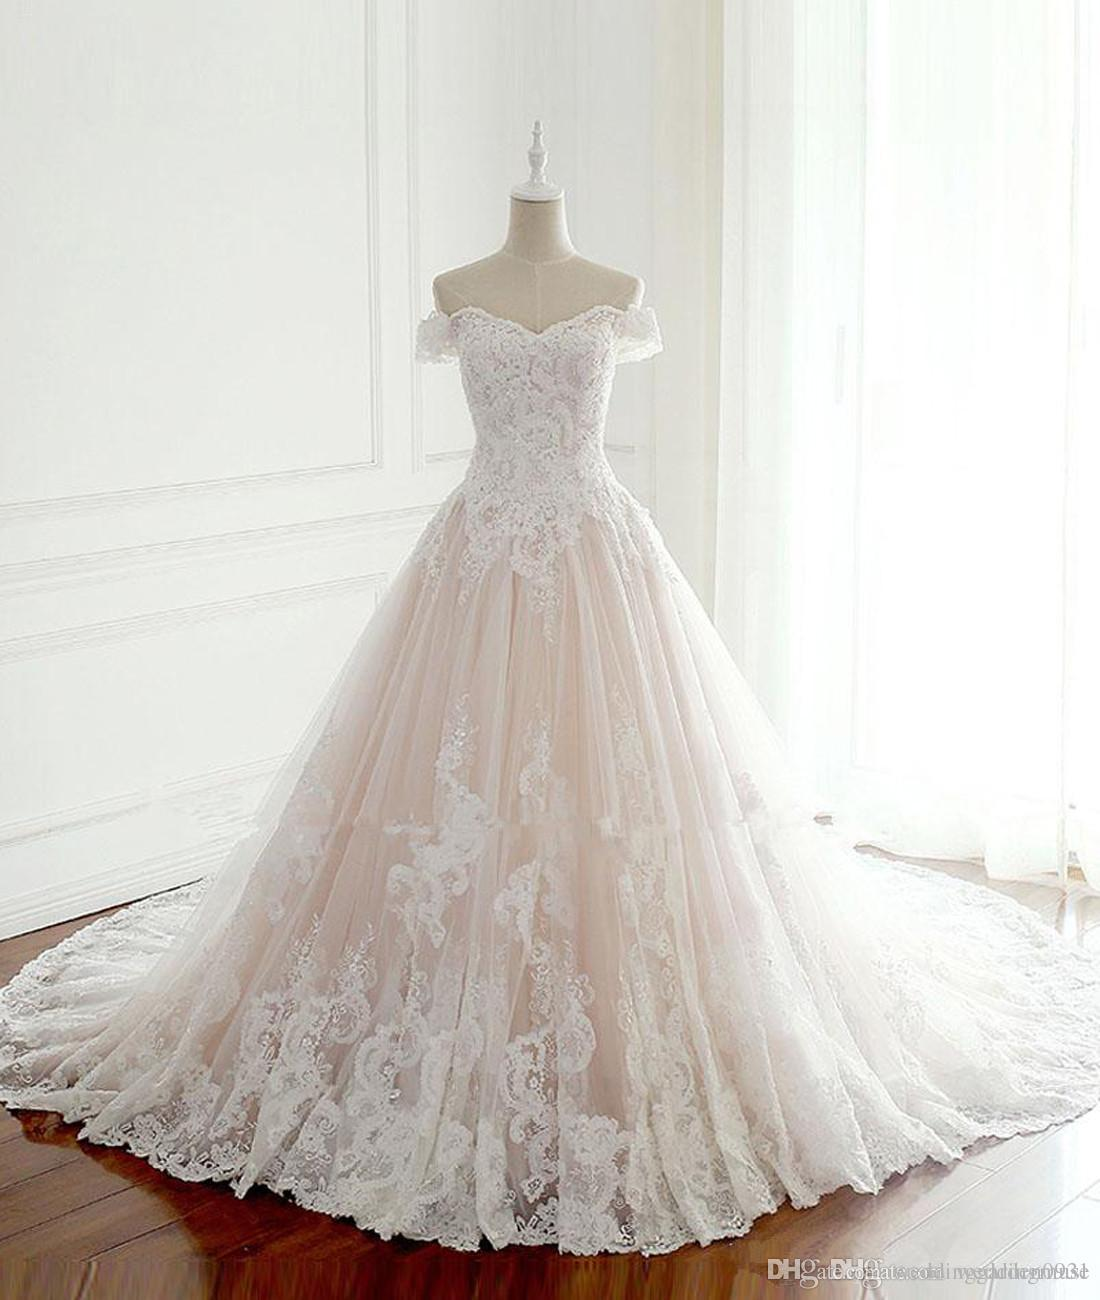 Lace A Line Wedding Dresses Sweetheart Sleeveless Tulle Lace Appliques Sweep Train Zipper Bridal Wedding Gowns Plus Size Custom Made